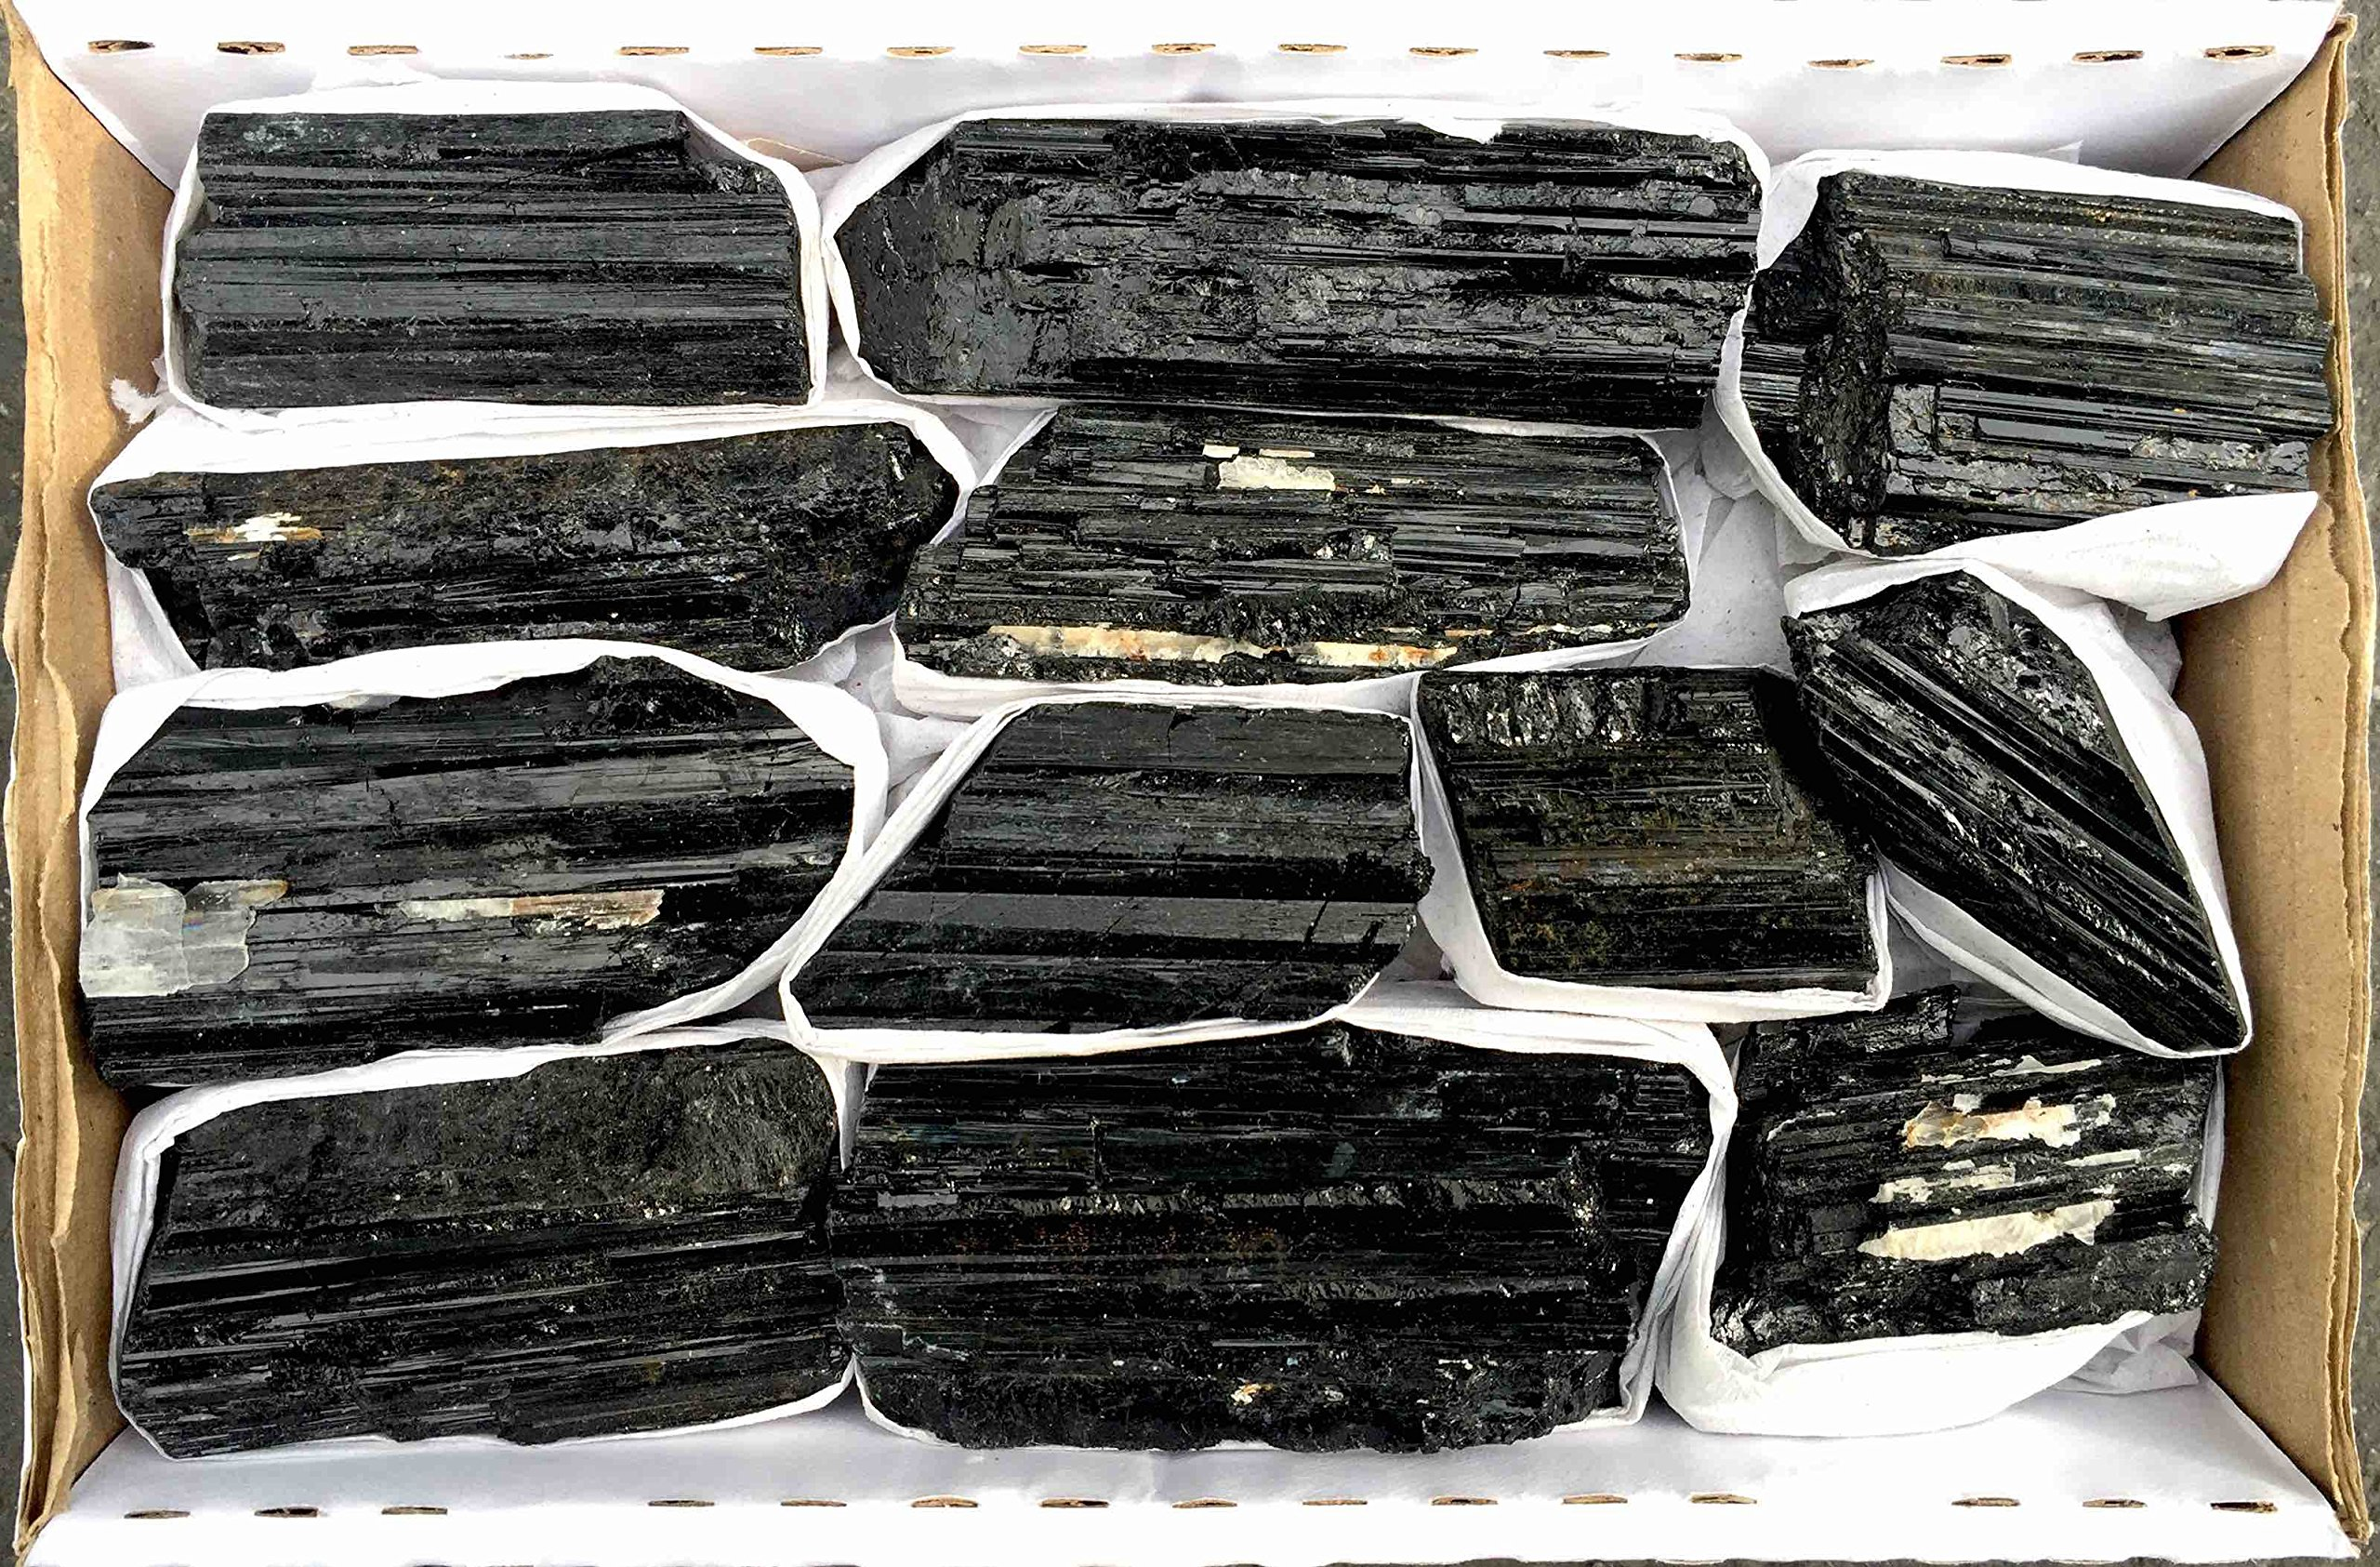 JIC Gem 2 Lb Black Tourmaline Collection in Box of 7x5x2, 10-15 pcs Healing Crystals by JIC Gem